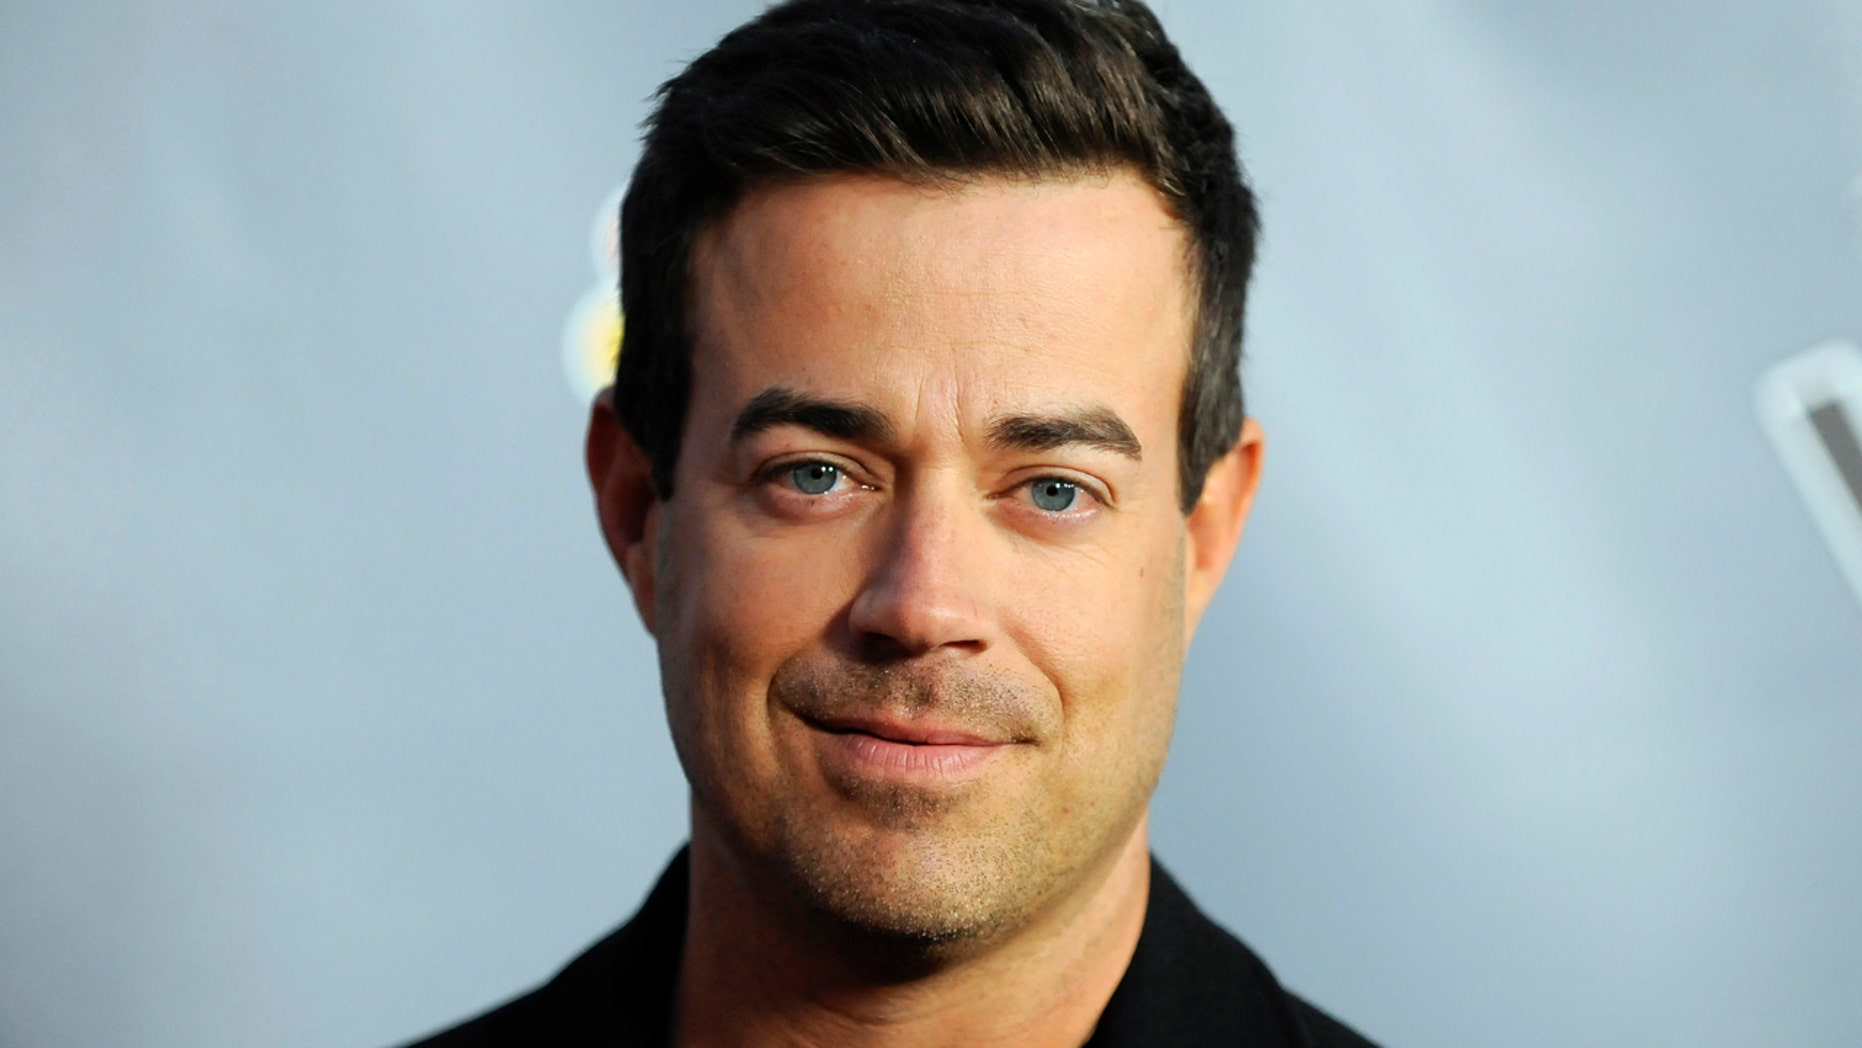 """Television personality and """"The Voice"""" host Carson Daly arrives at the """"The Voice"""" Season 4 premiere screening in Los Angeles, California March 20, 2013."""